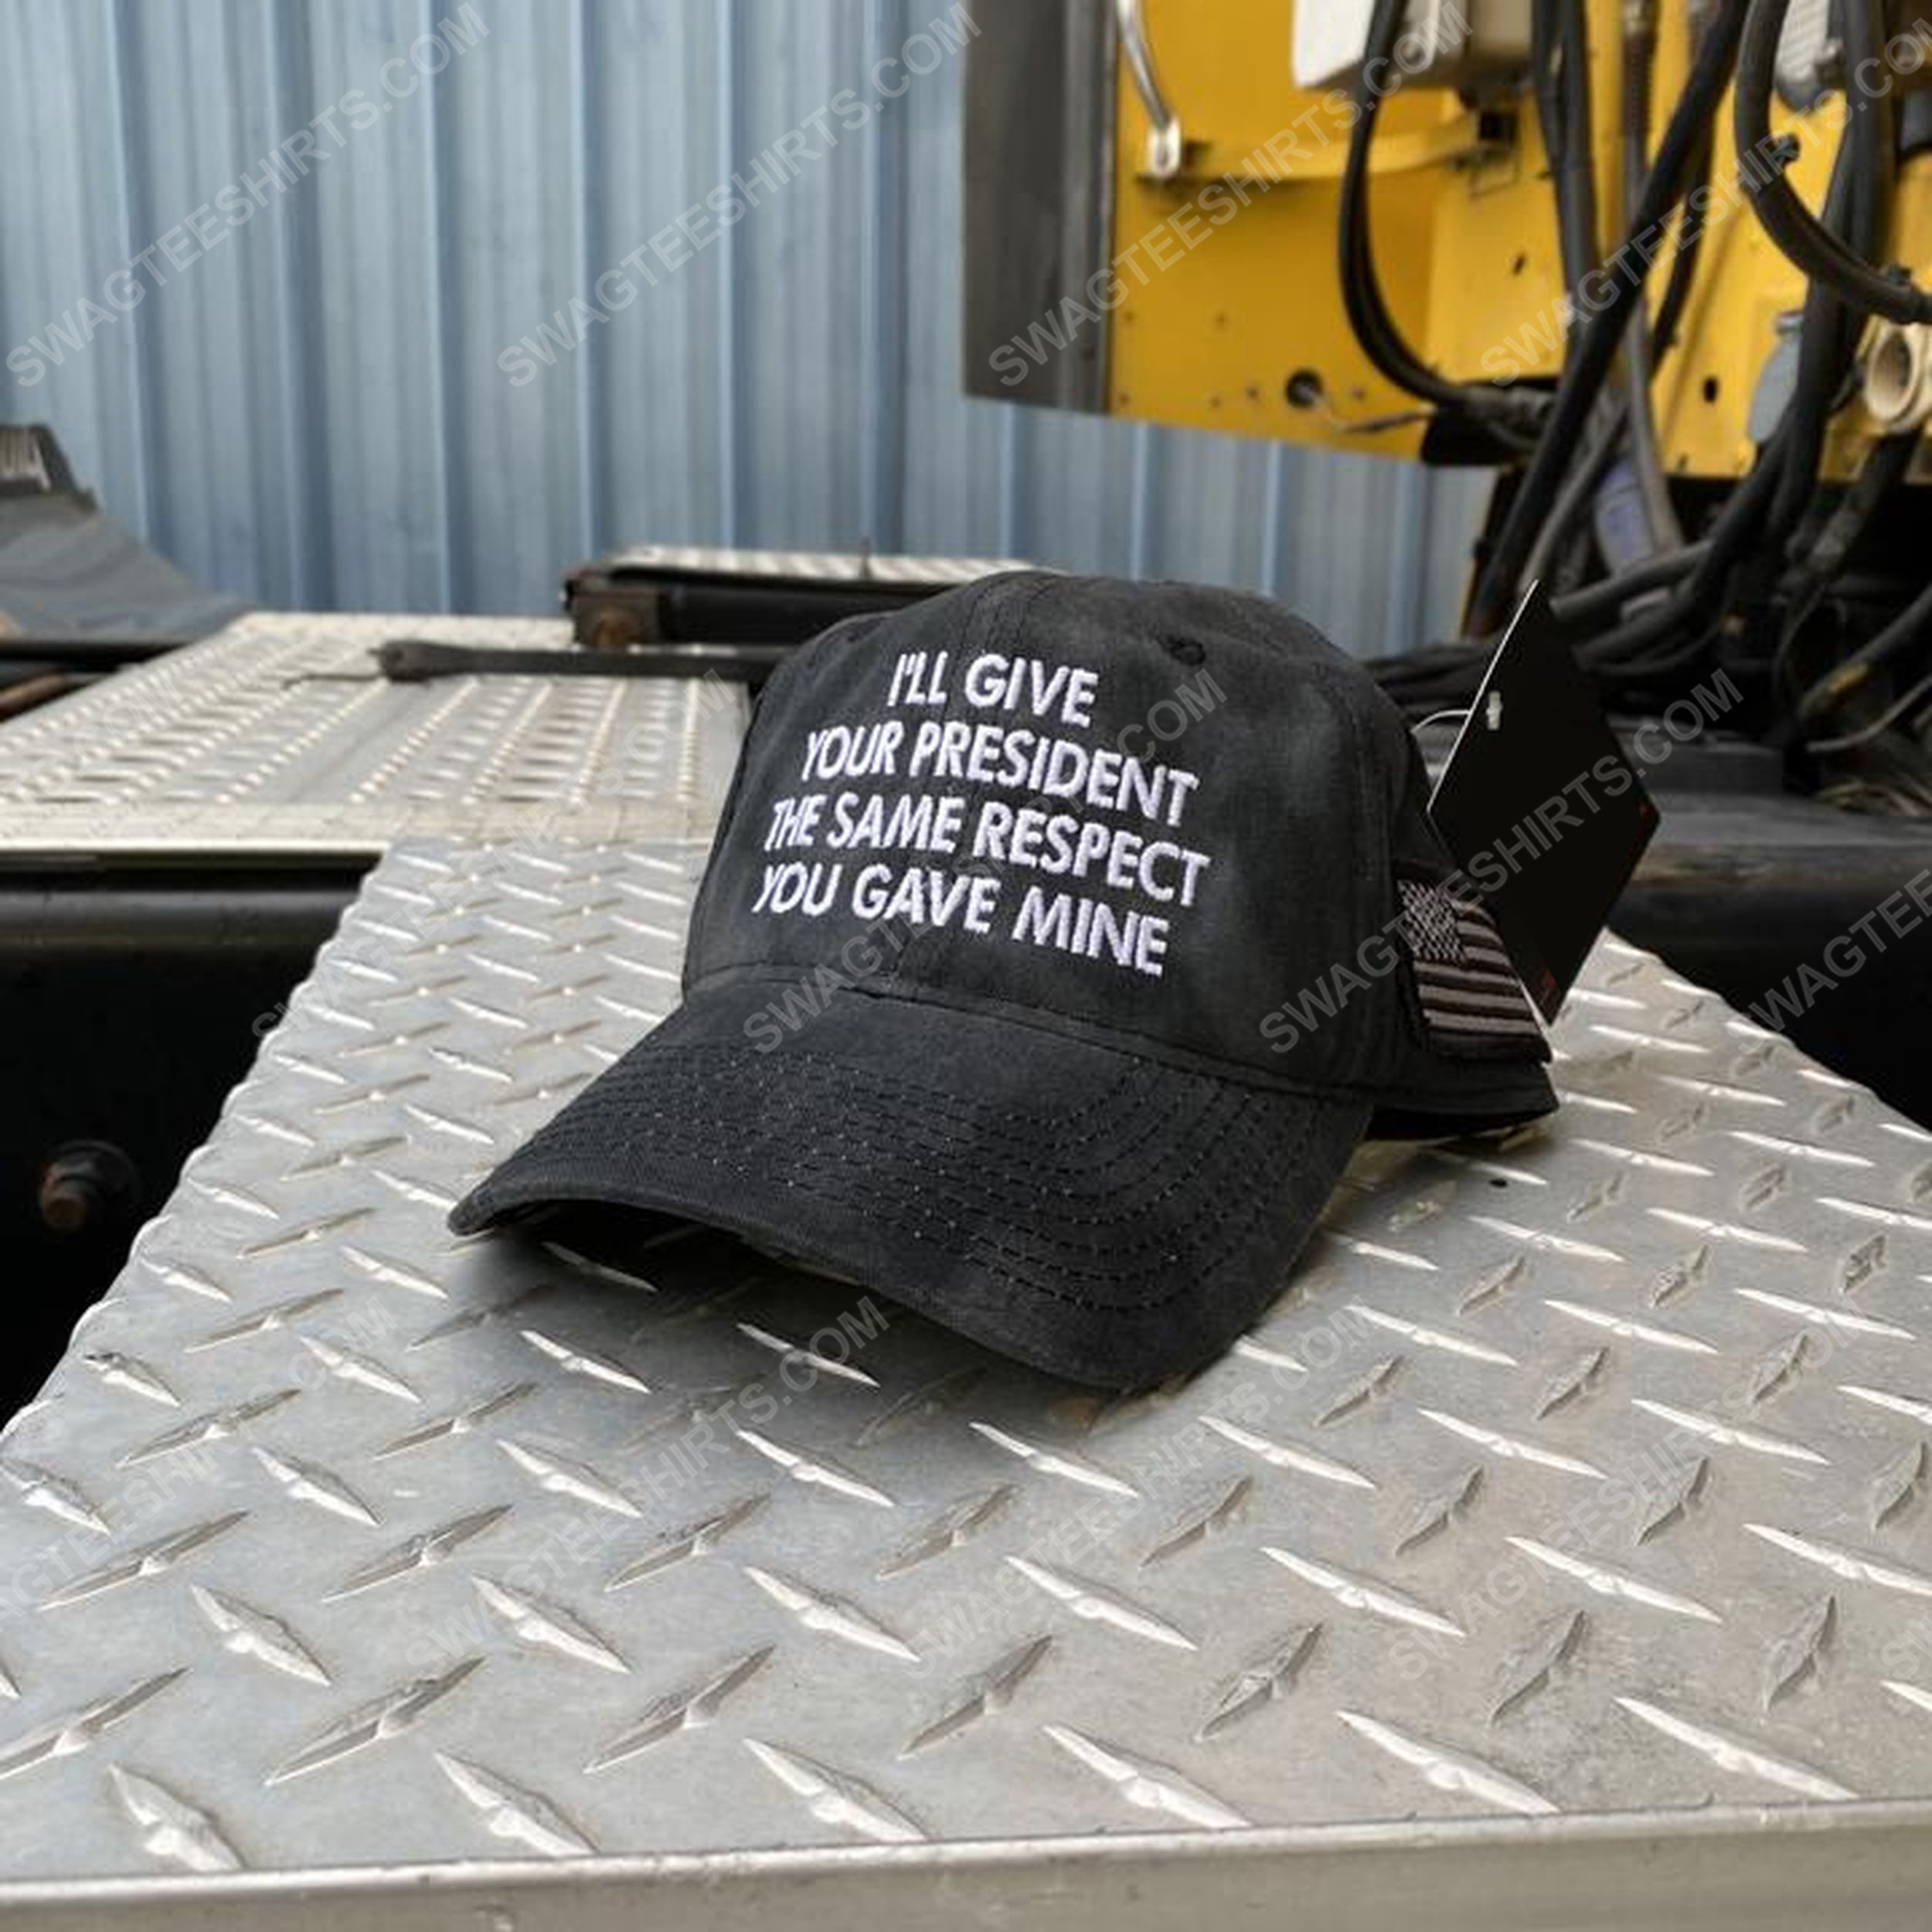 I'll give your president the same respect you gave mine full print classic hat 1 - Copy (3)